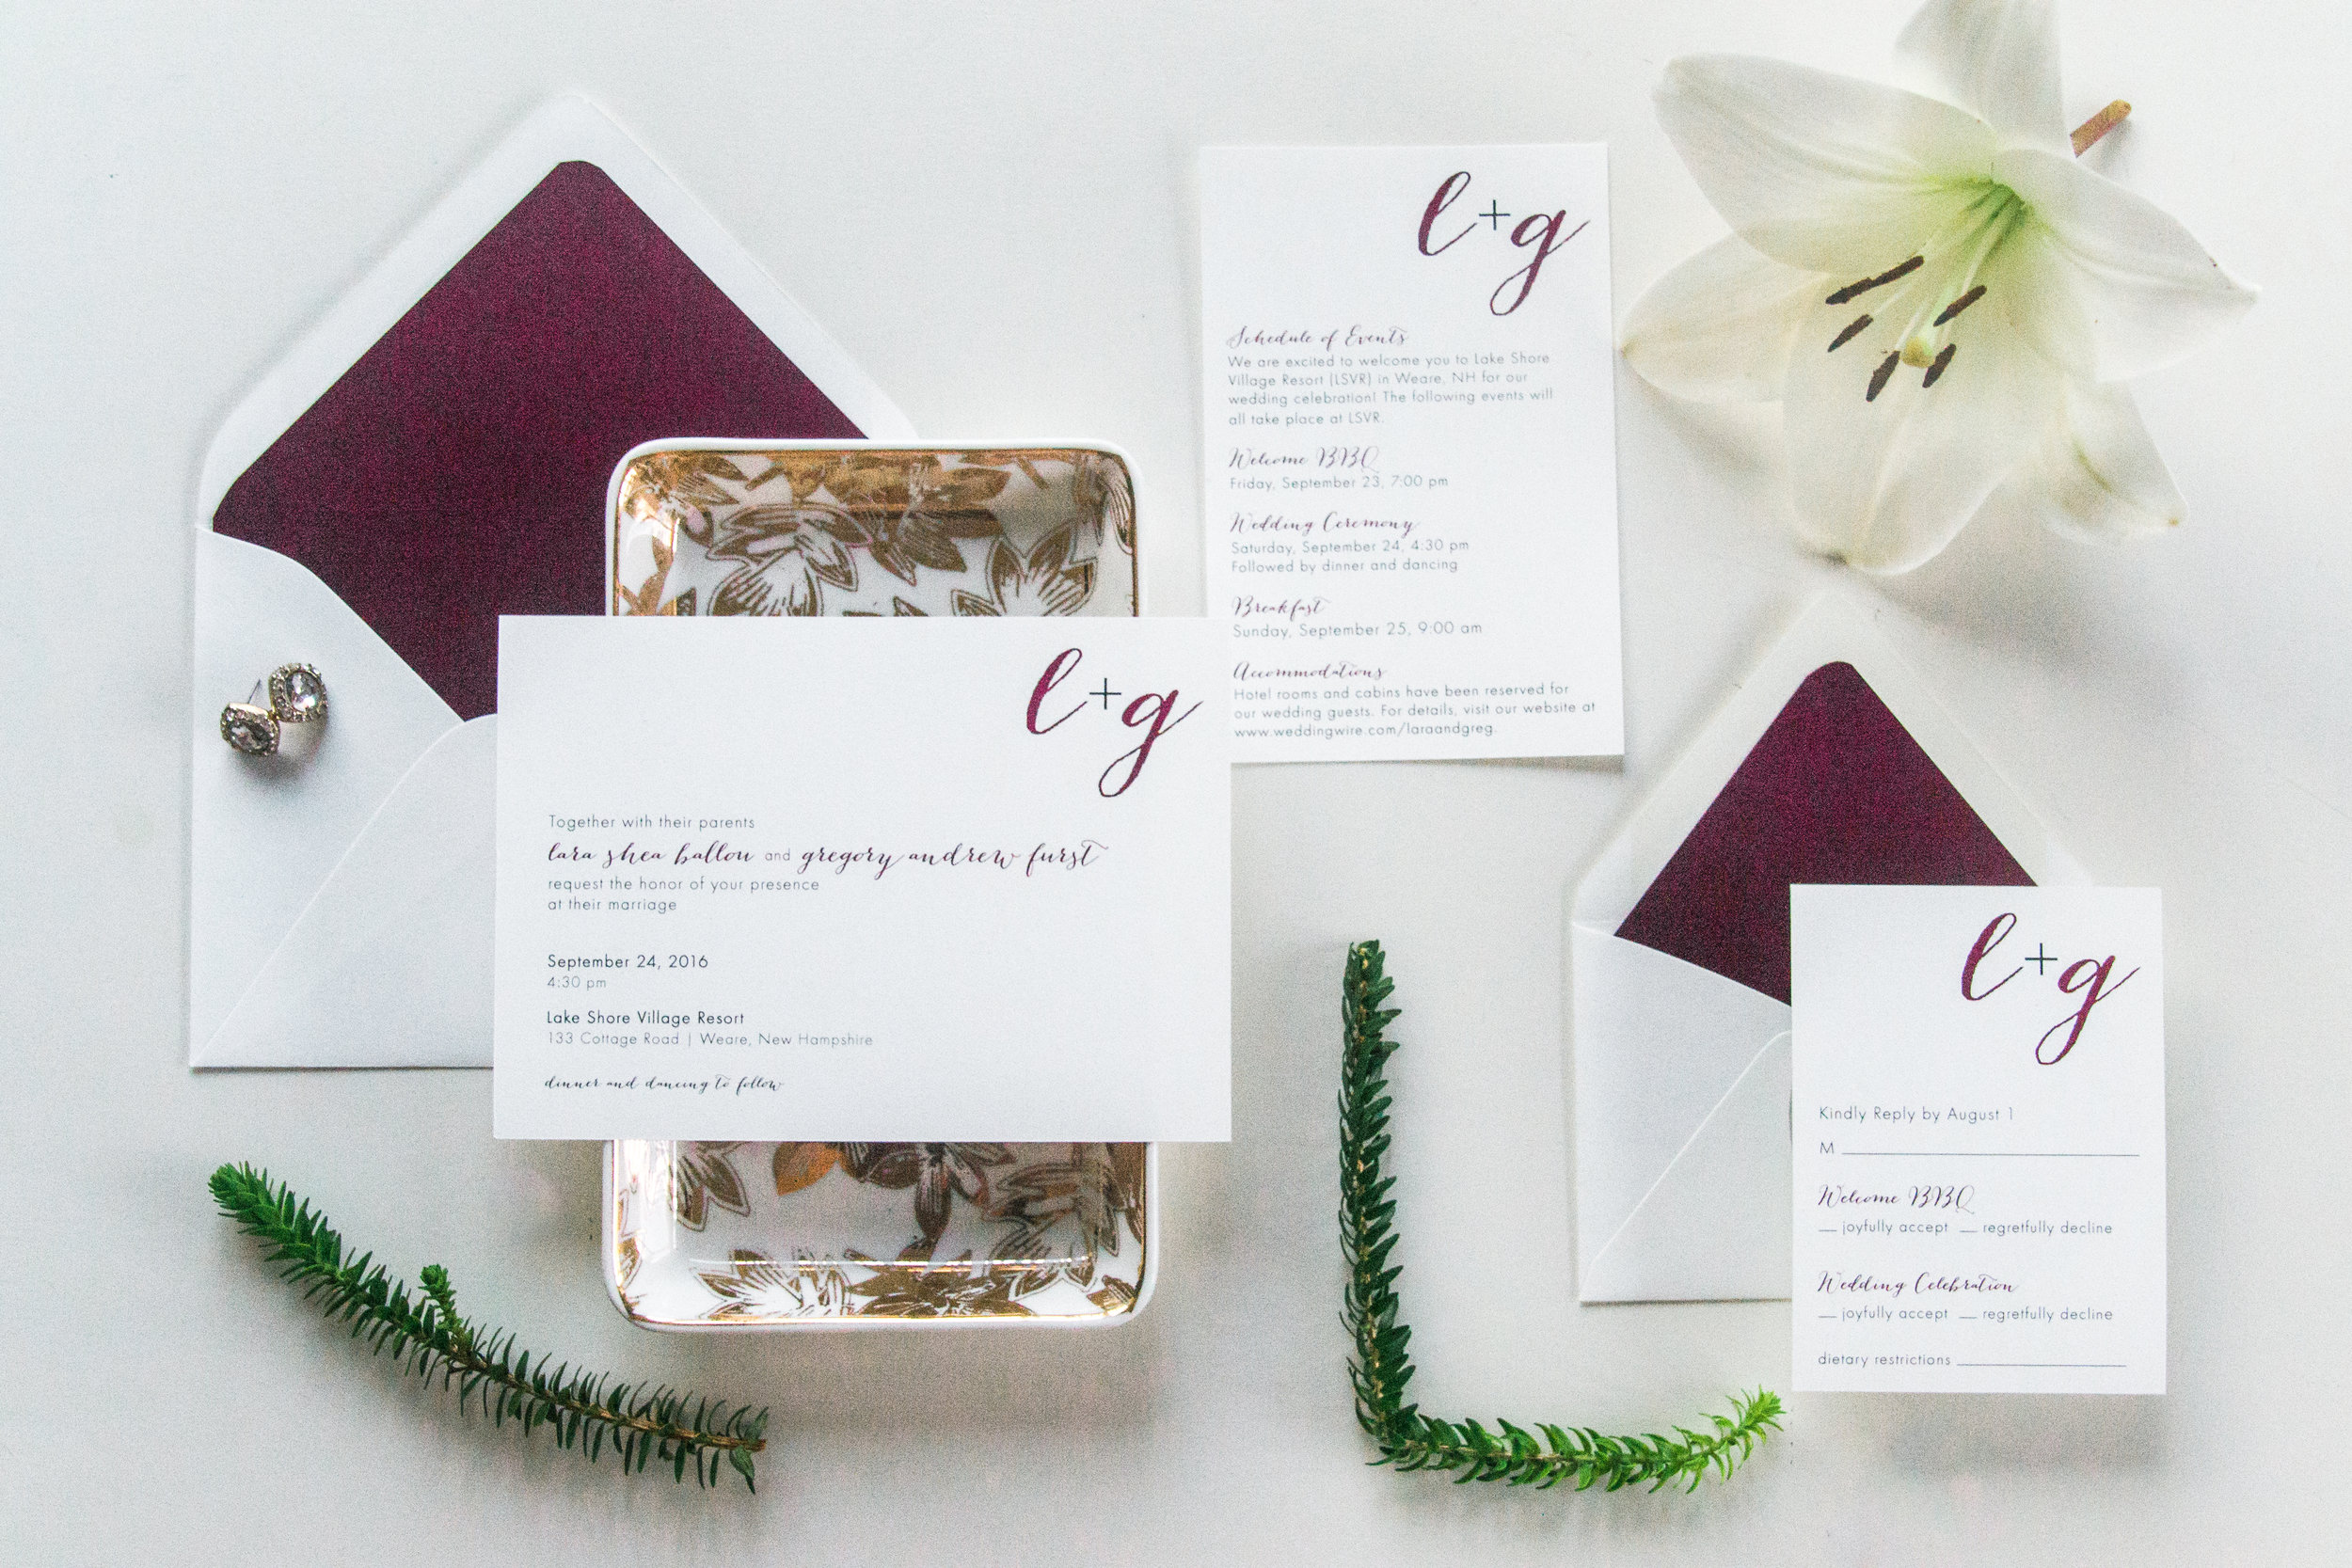 Lara + Greg's wedding invitation suite